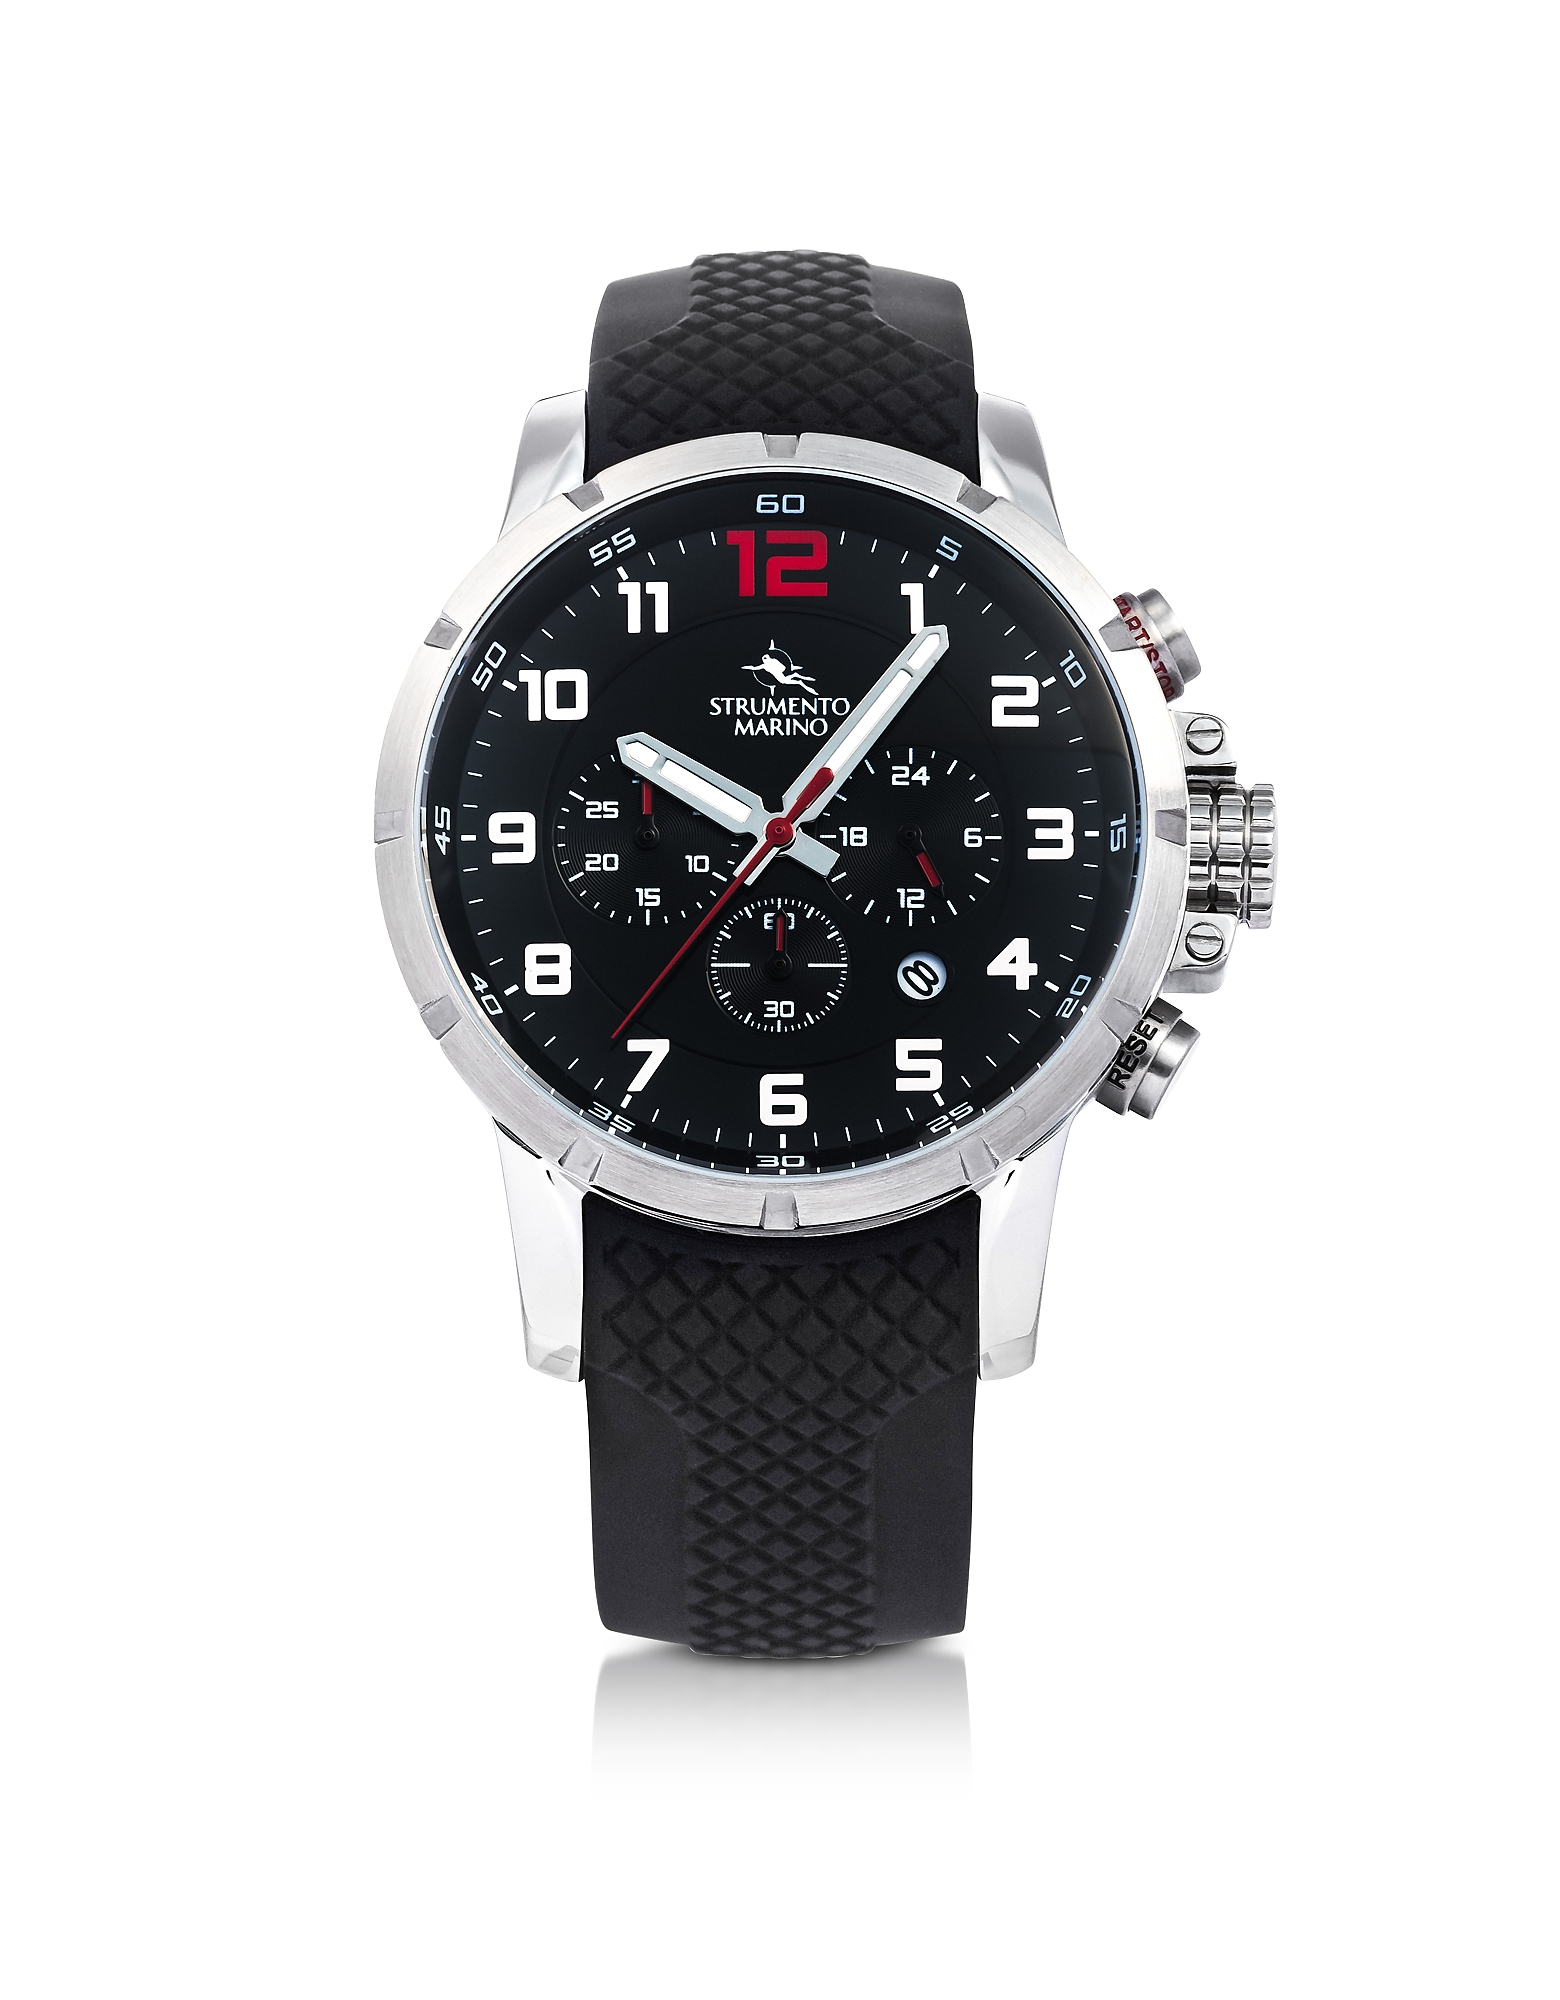 Strumento Marino Men's Watches, Summertime Stainless Steel and Black Silicone Men's Chronograph Watc